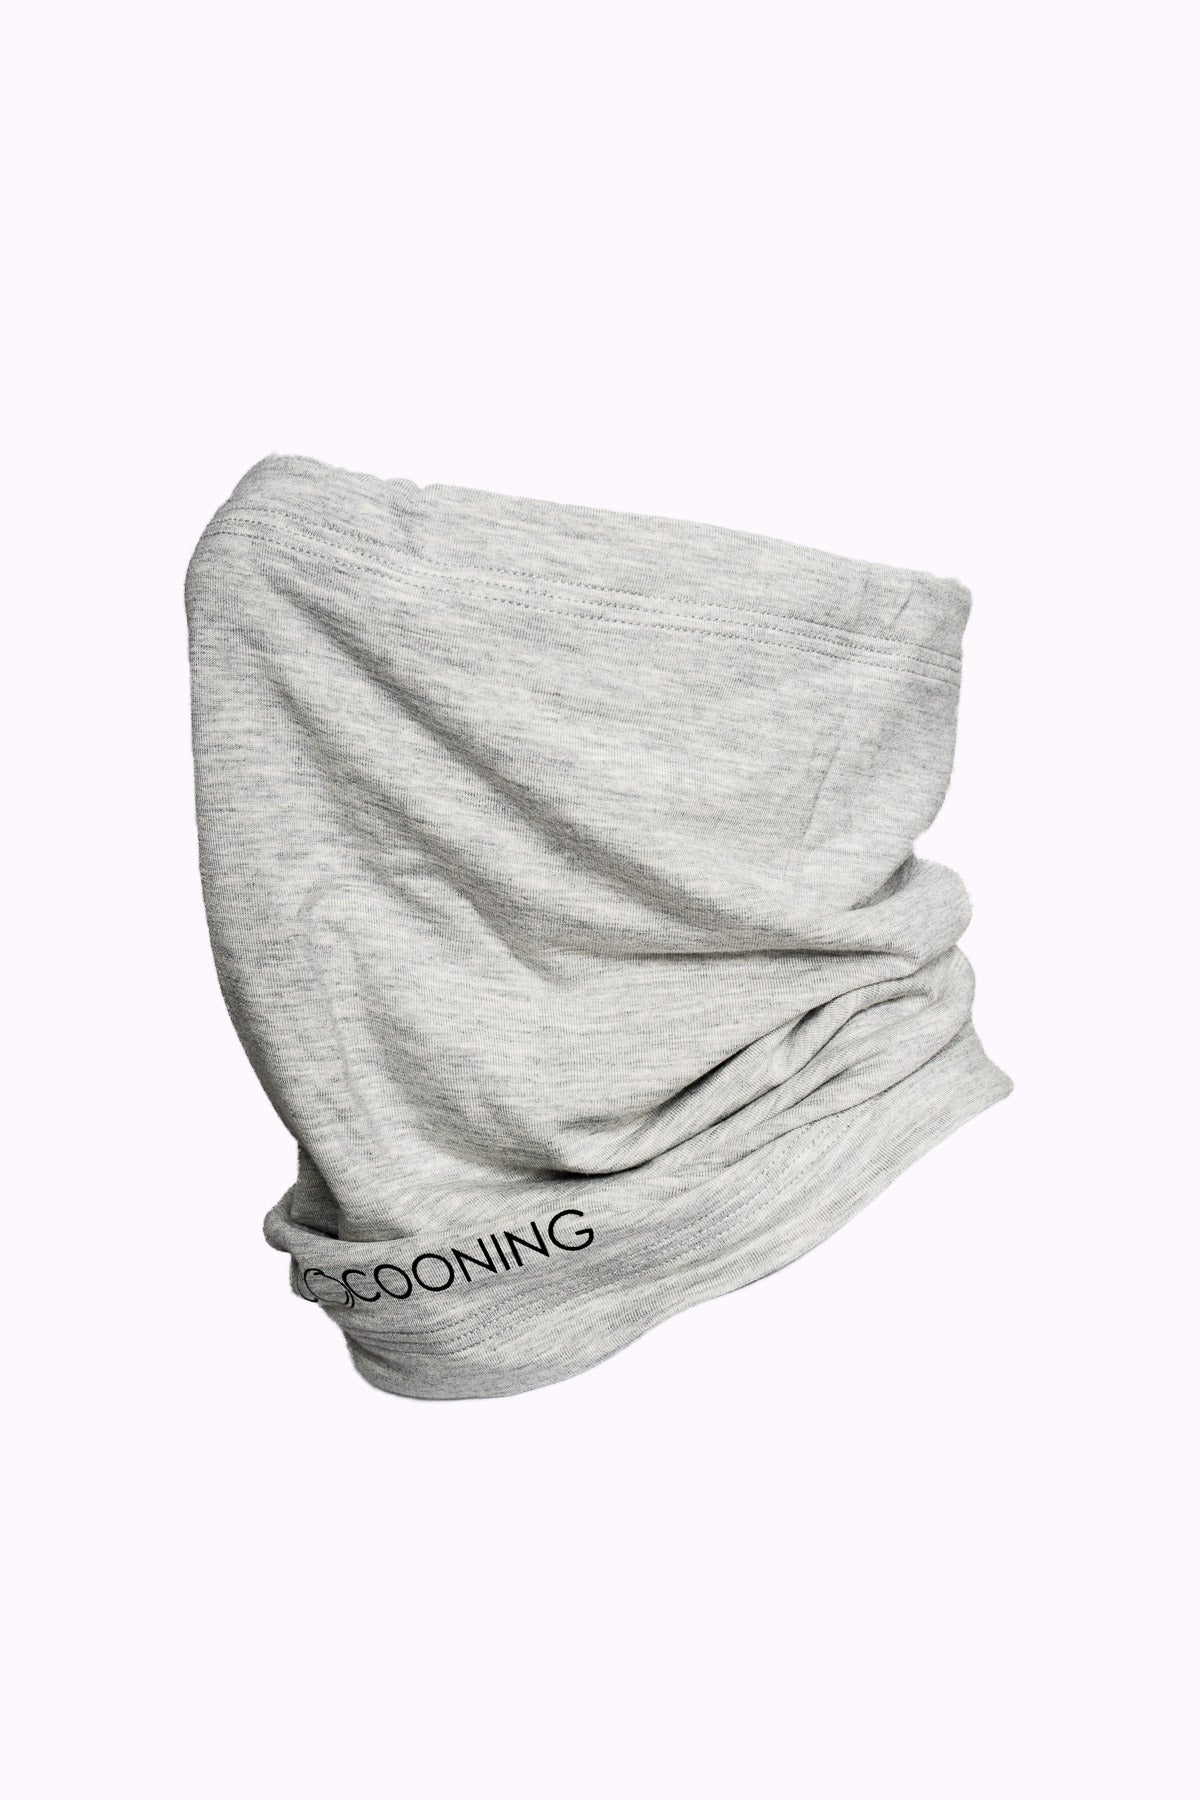 Cocooning Bamboo Fully Fitted Adjustable Layered Snoods